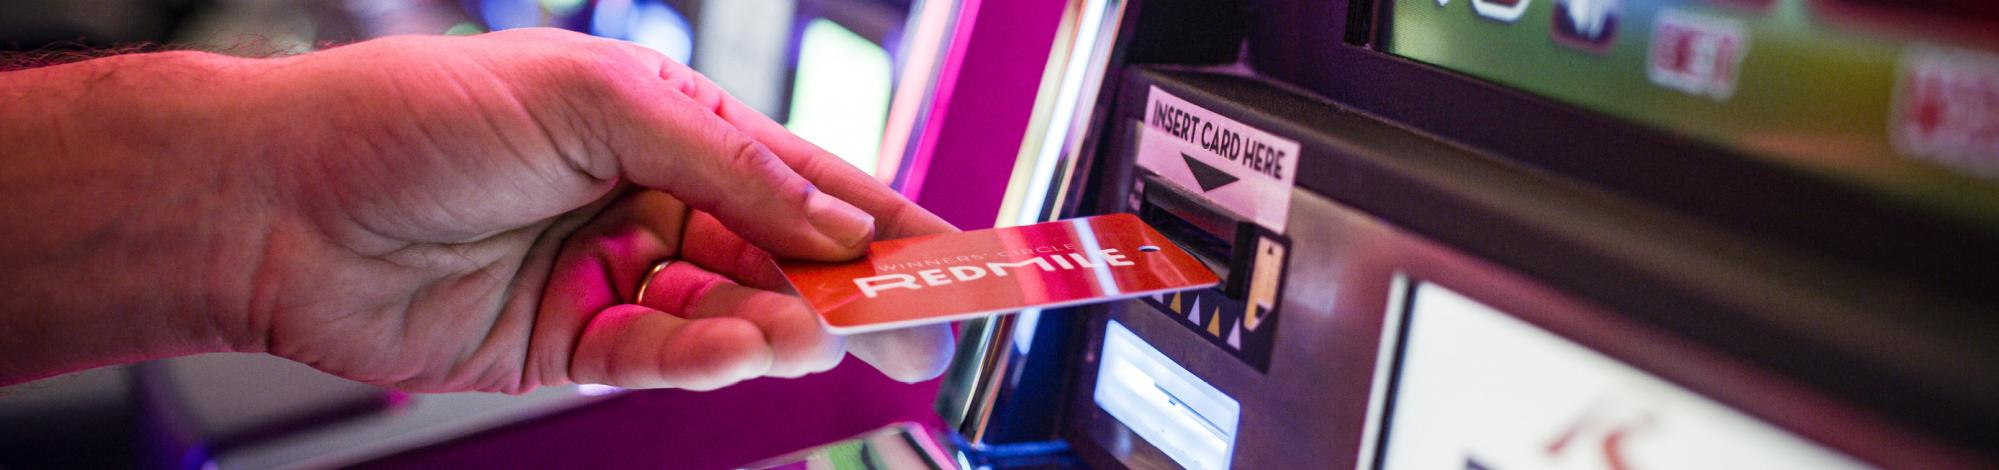 Player inserting Red Mile Circle card into slot machine